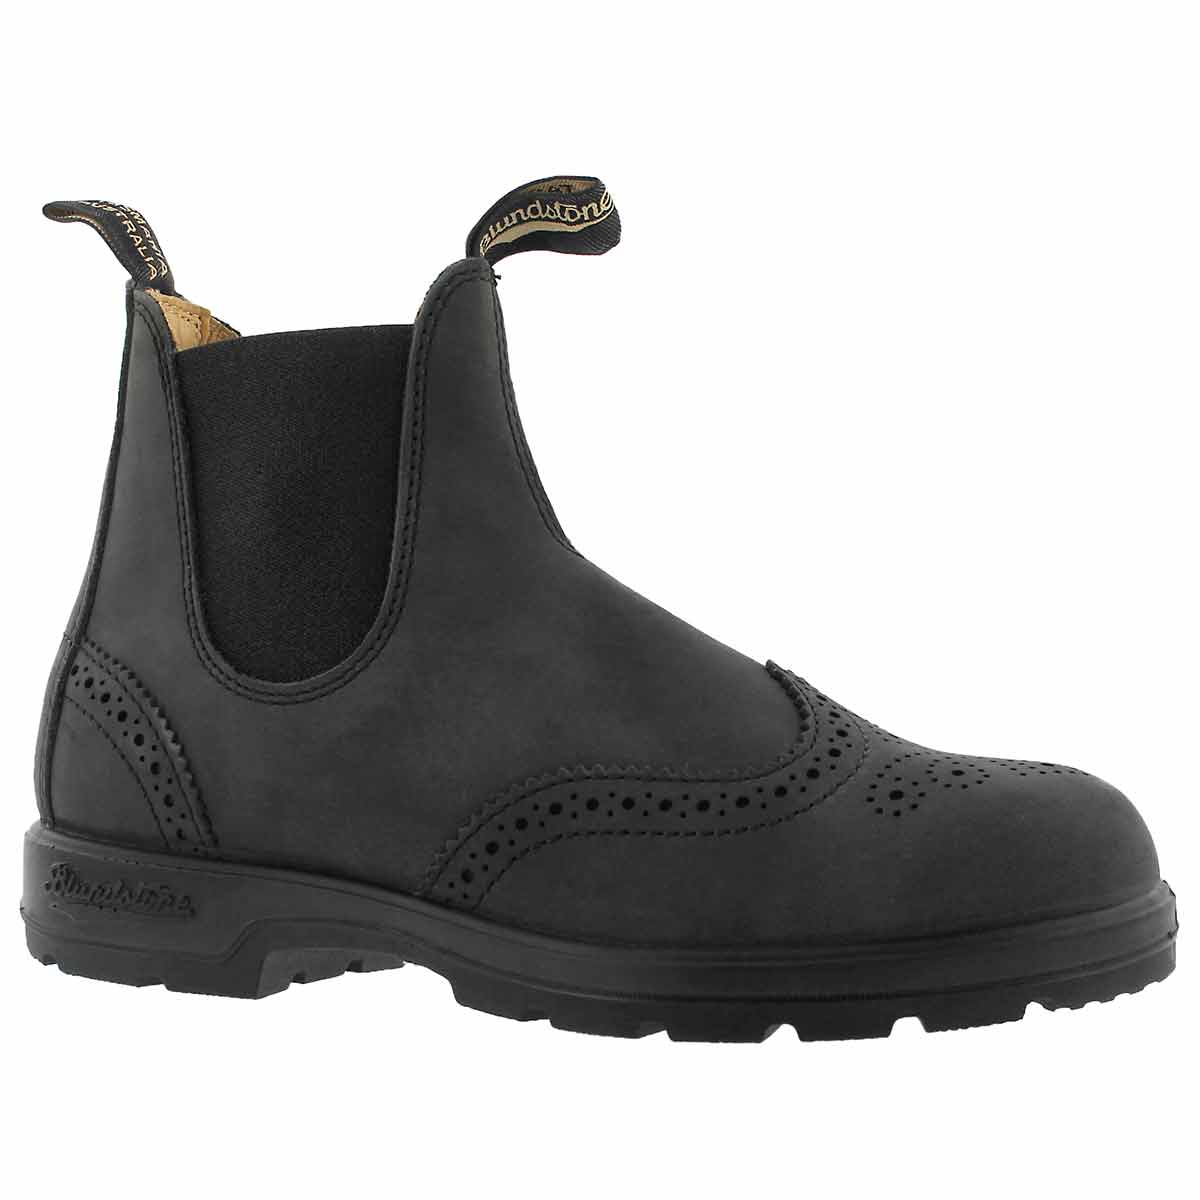 Unisex 1472 BROGUE rustic black twin gore boots